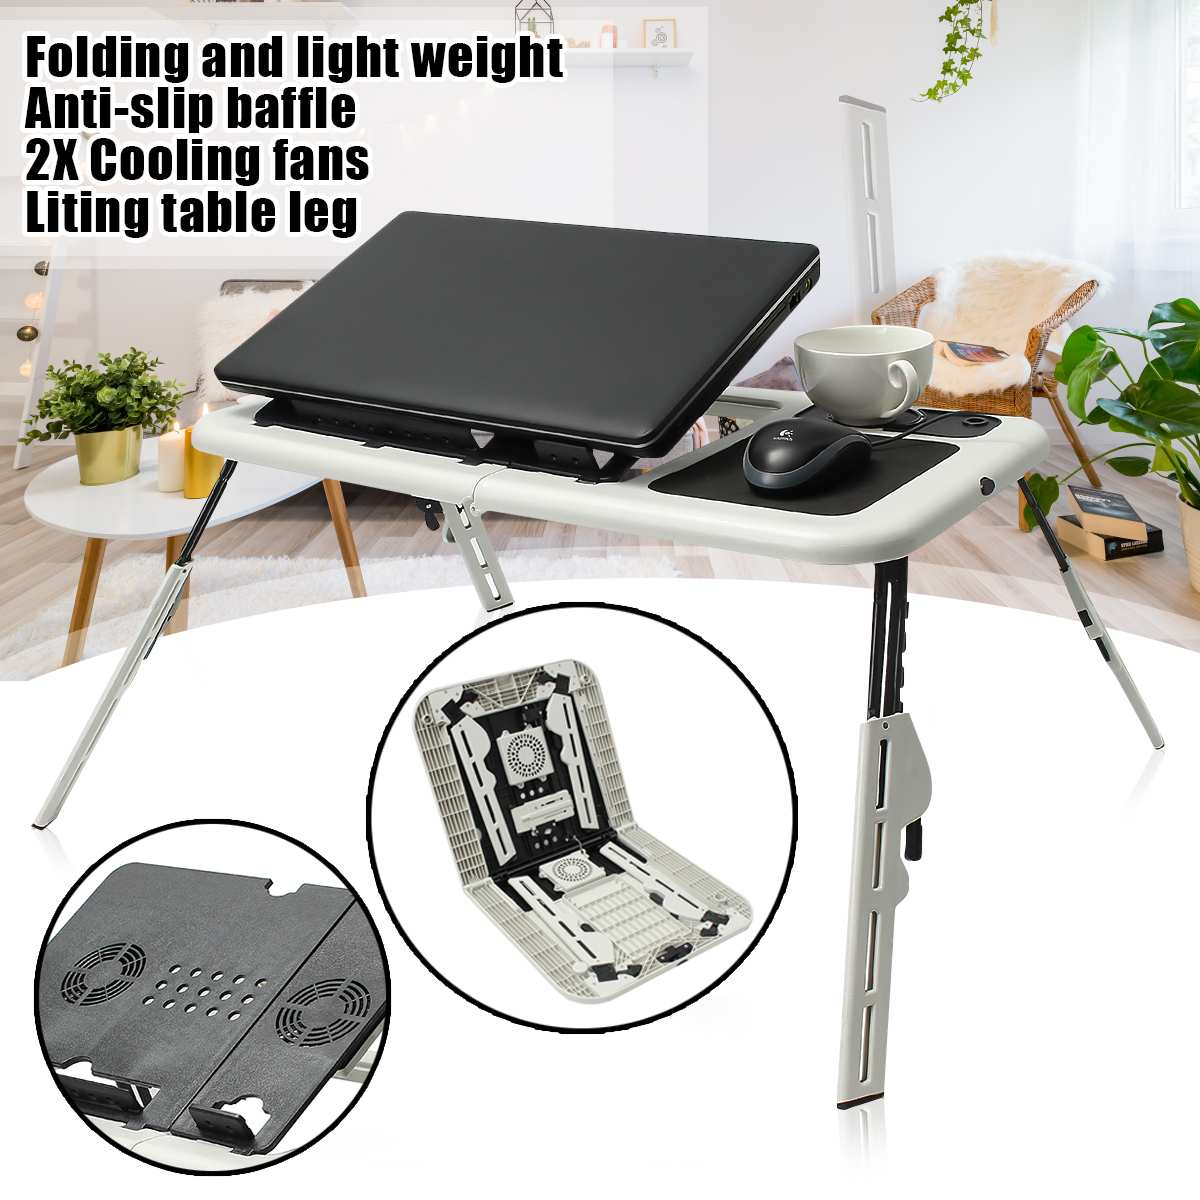 Multi-function Folding Laptop Desk Table Laptop Stand Holder With 2 USB Cooling Fans Mouse Pad Table  Lapdesks For Bed